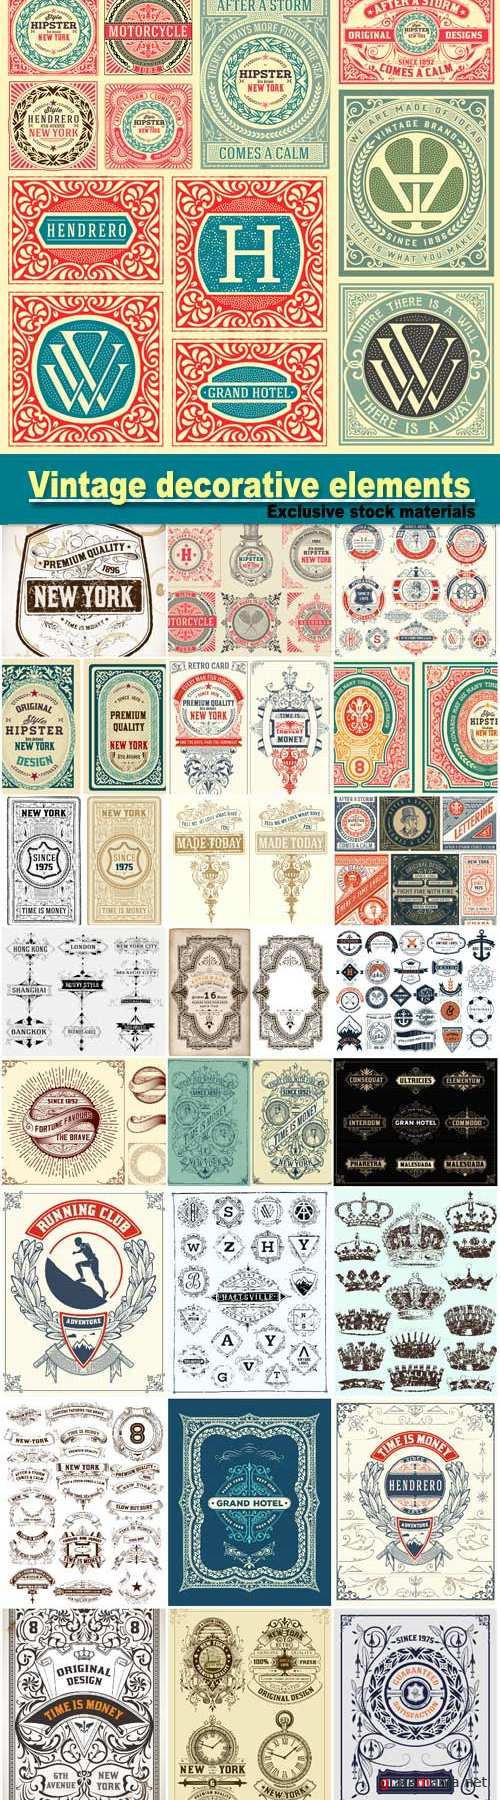 Vintage decorative elements in the vector, frame, labels, ornaments